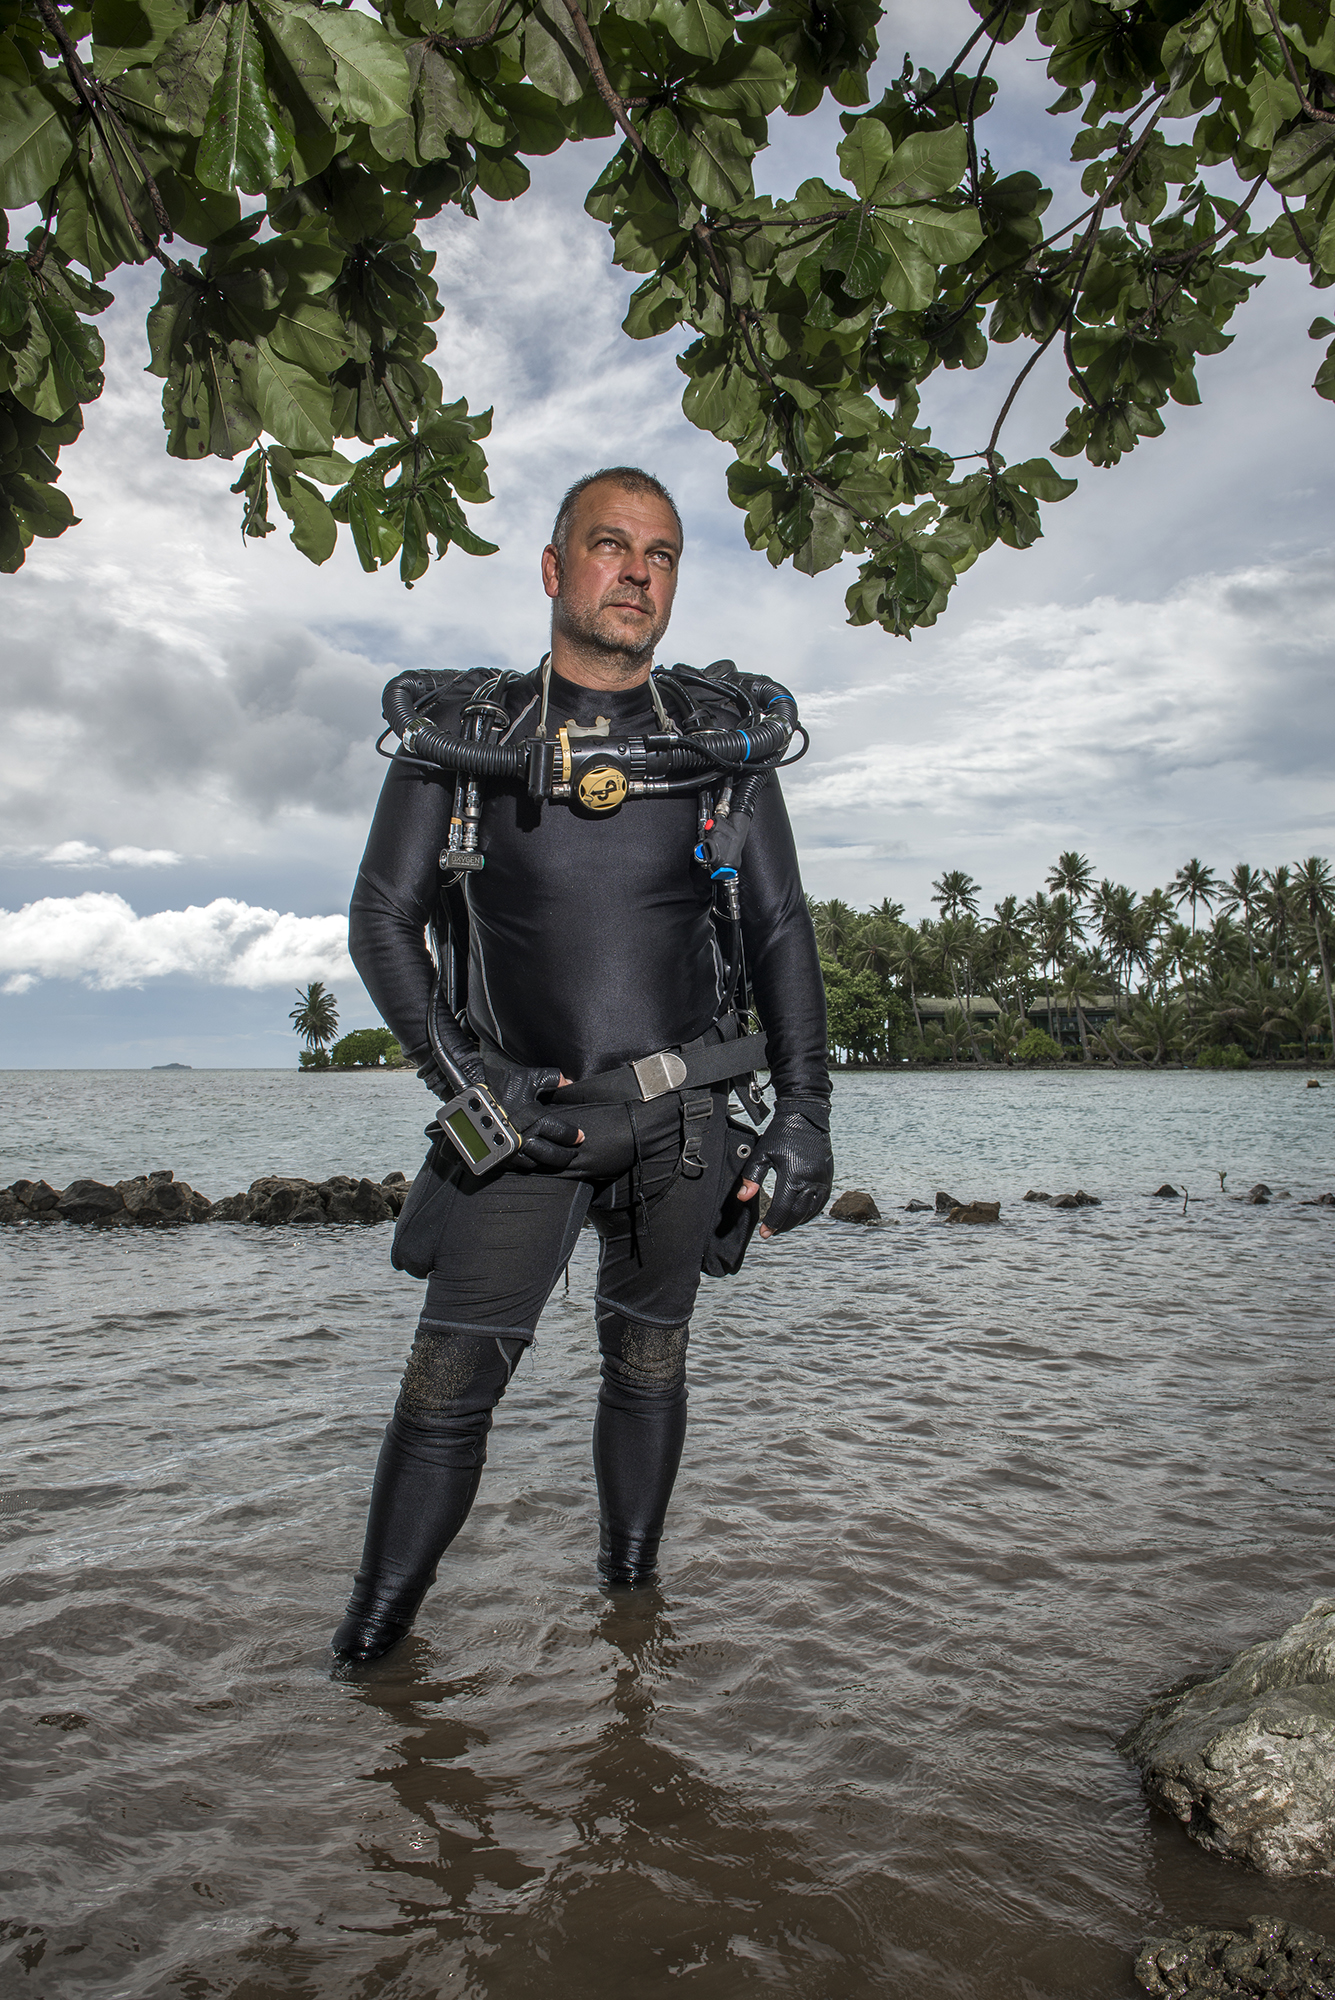 <p>Pete Mesley, who often leads tours to the Blue Lagoon Resort, operates a company called Lust4Rust. He&#8217;d like to see improvements made to Chuuk&#8217;s infrastructure to help expand tourism.</p>